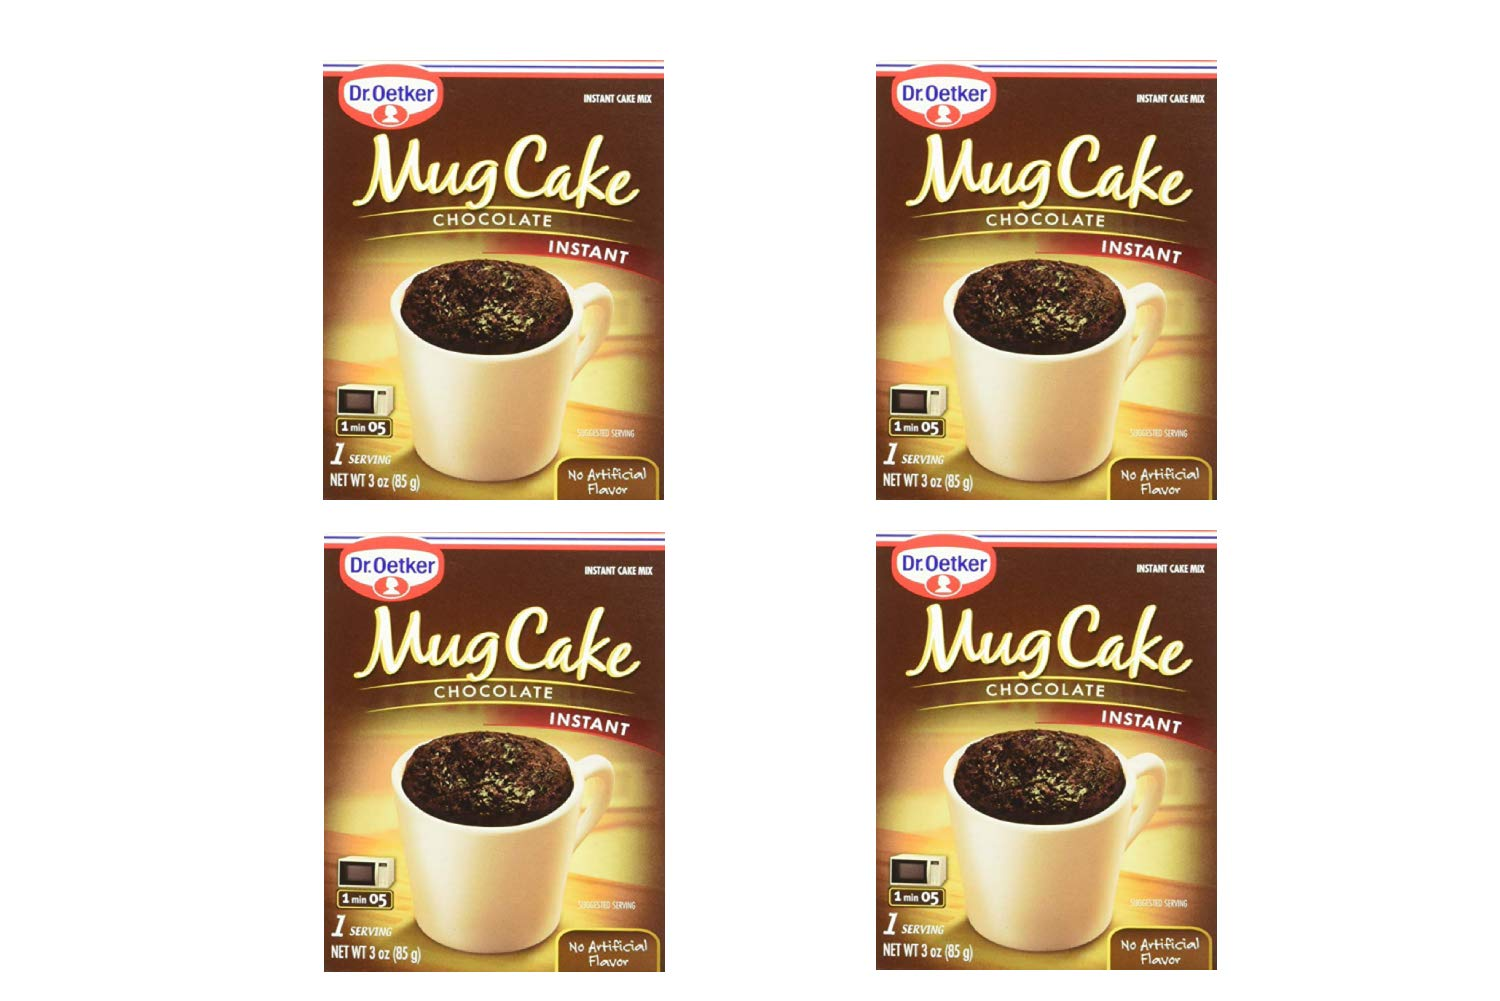 Dr. Oetker Mug Cake Chocolate Instant Cake Mix 3-Ounce (4 Count) (4 Pack)